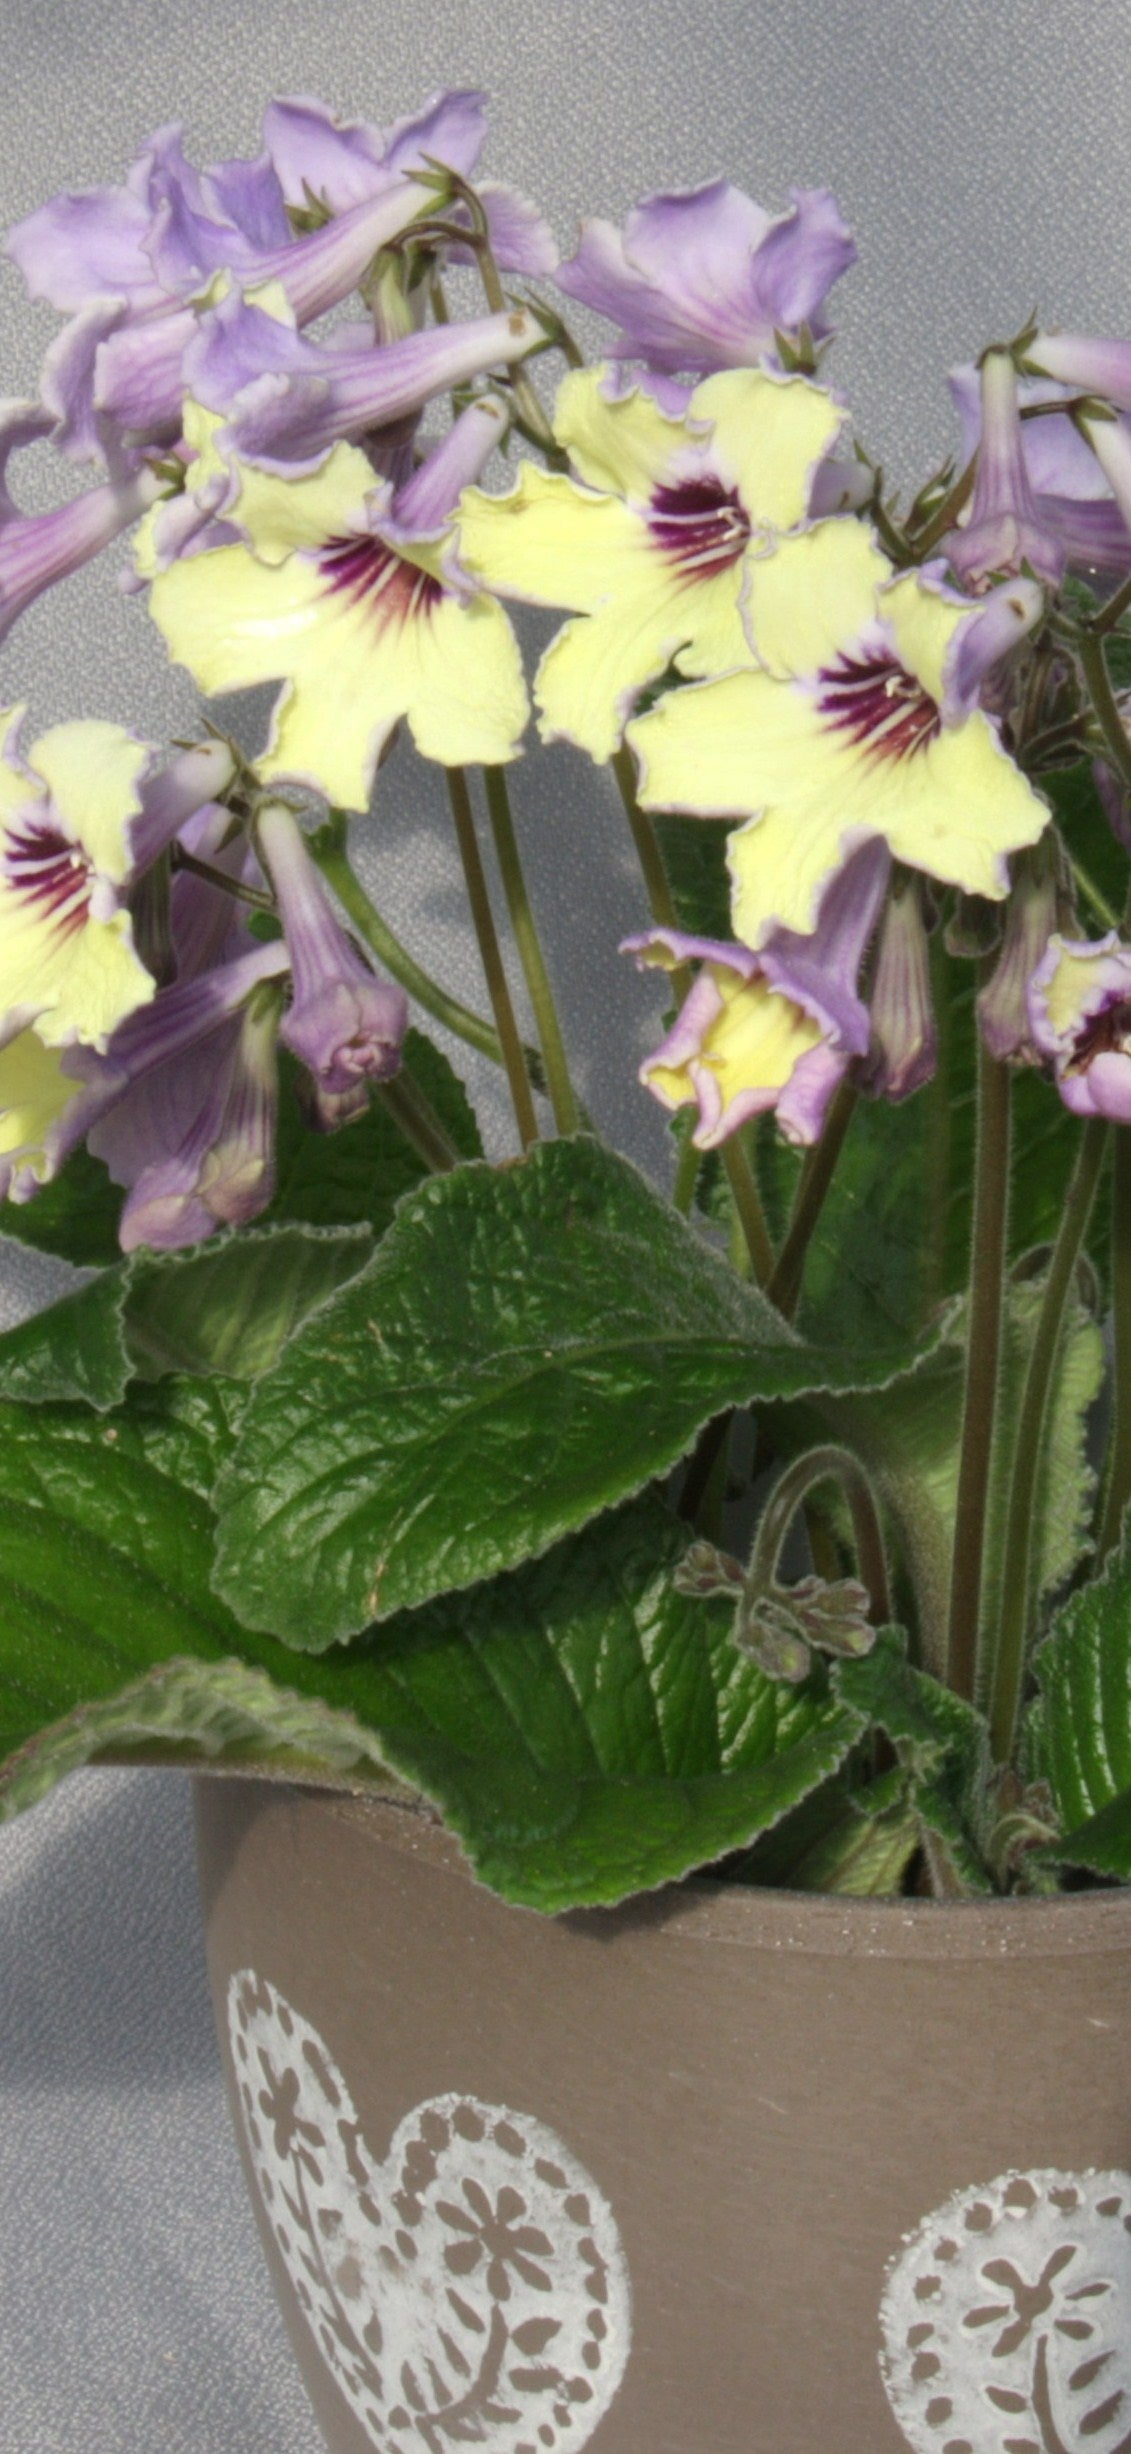 Streptocarpus Lemon Sorbet - Dibleys